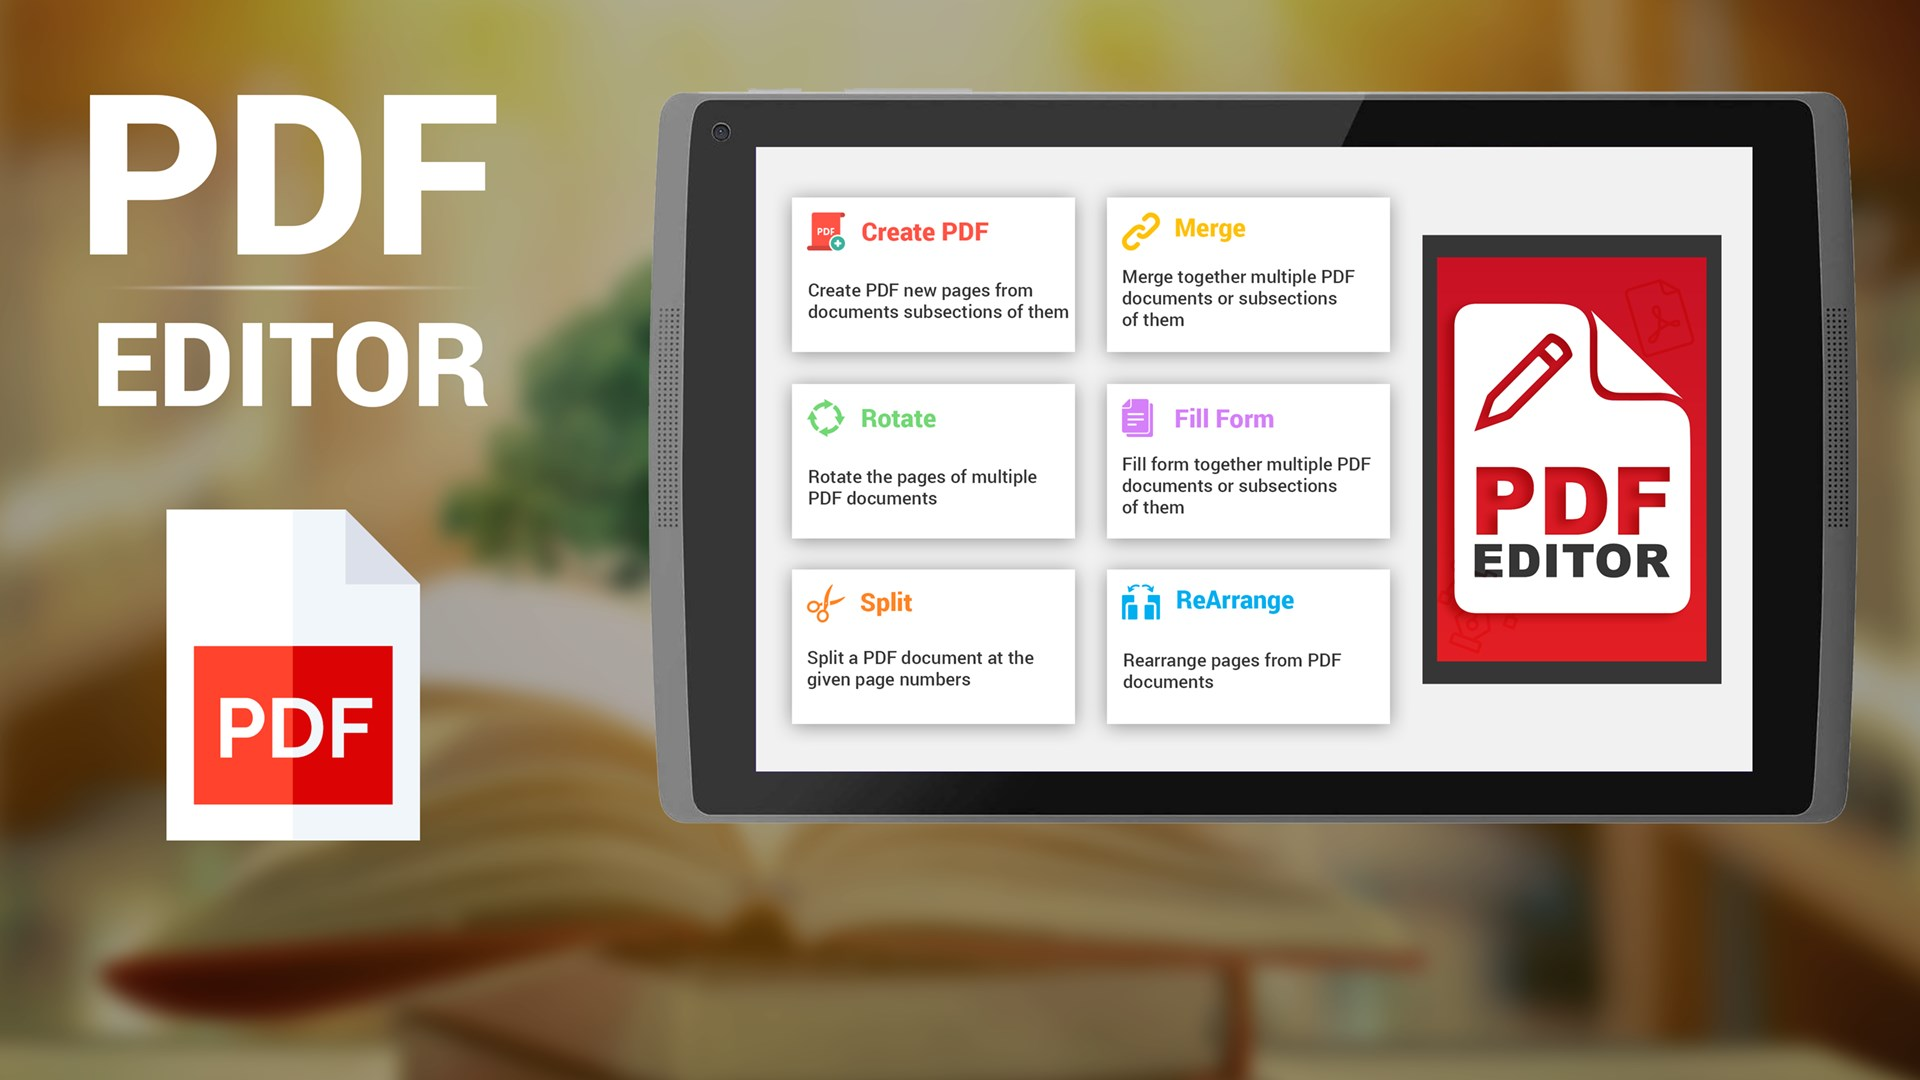 Get PDF Editor - Reader, View, Share, Splitter, Fill Forms